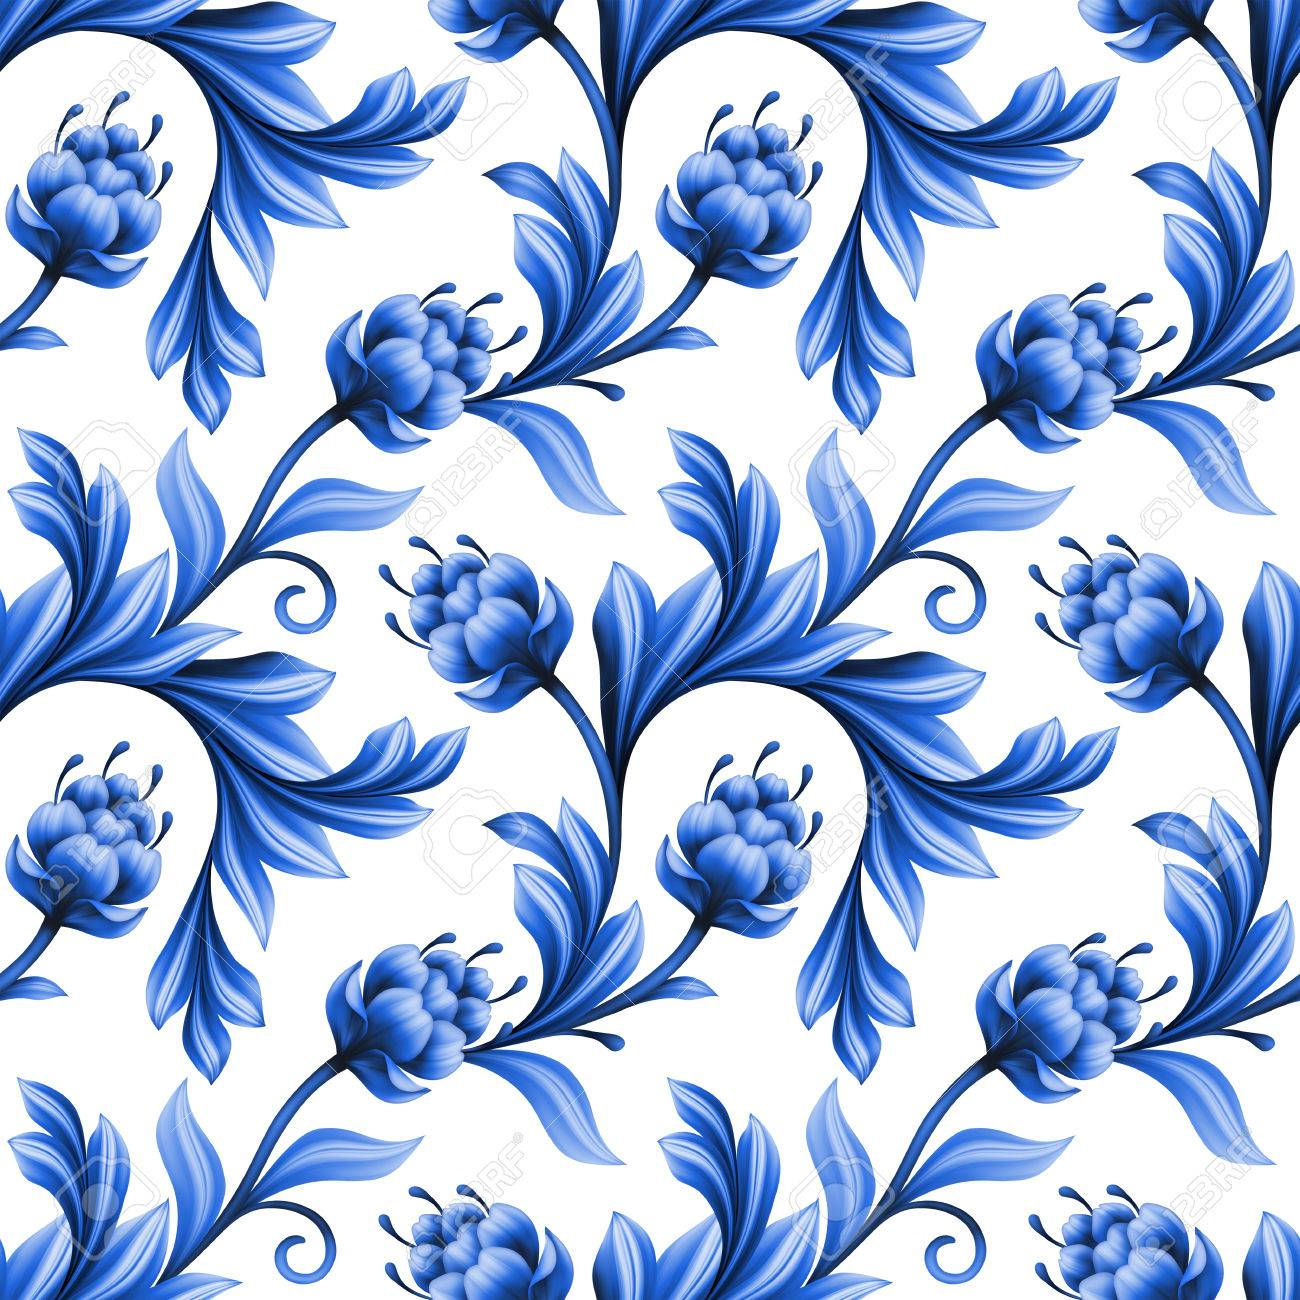 Abstract Floral Seamless Pattern Background With Folk Art Flowers Blue White Gzhel Ornament Stock